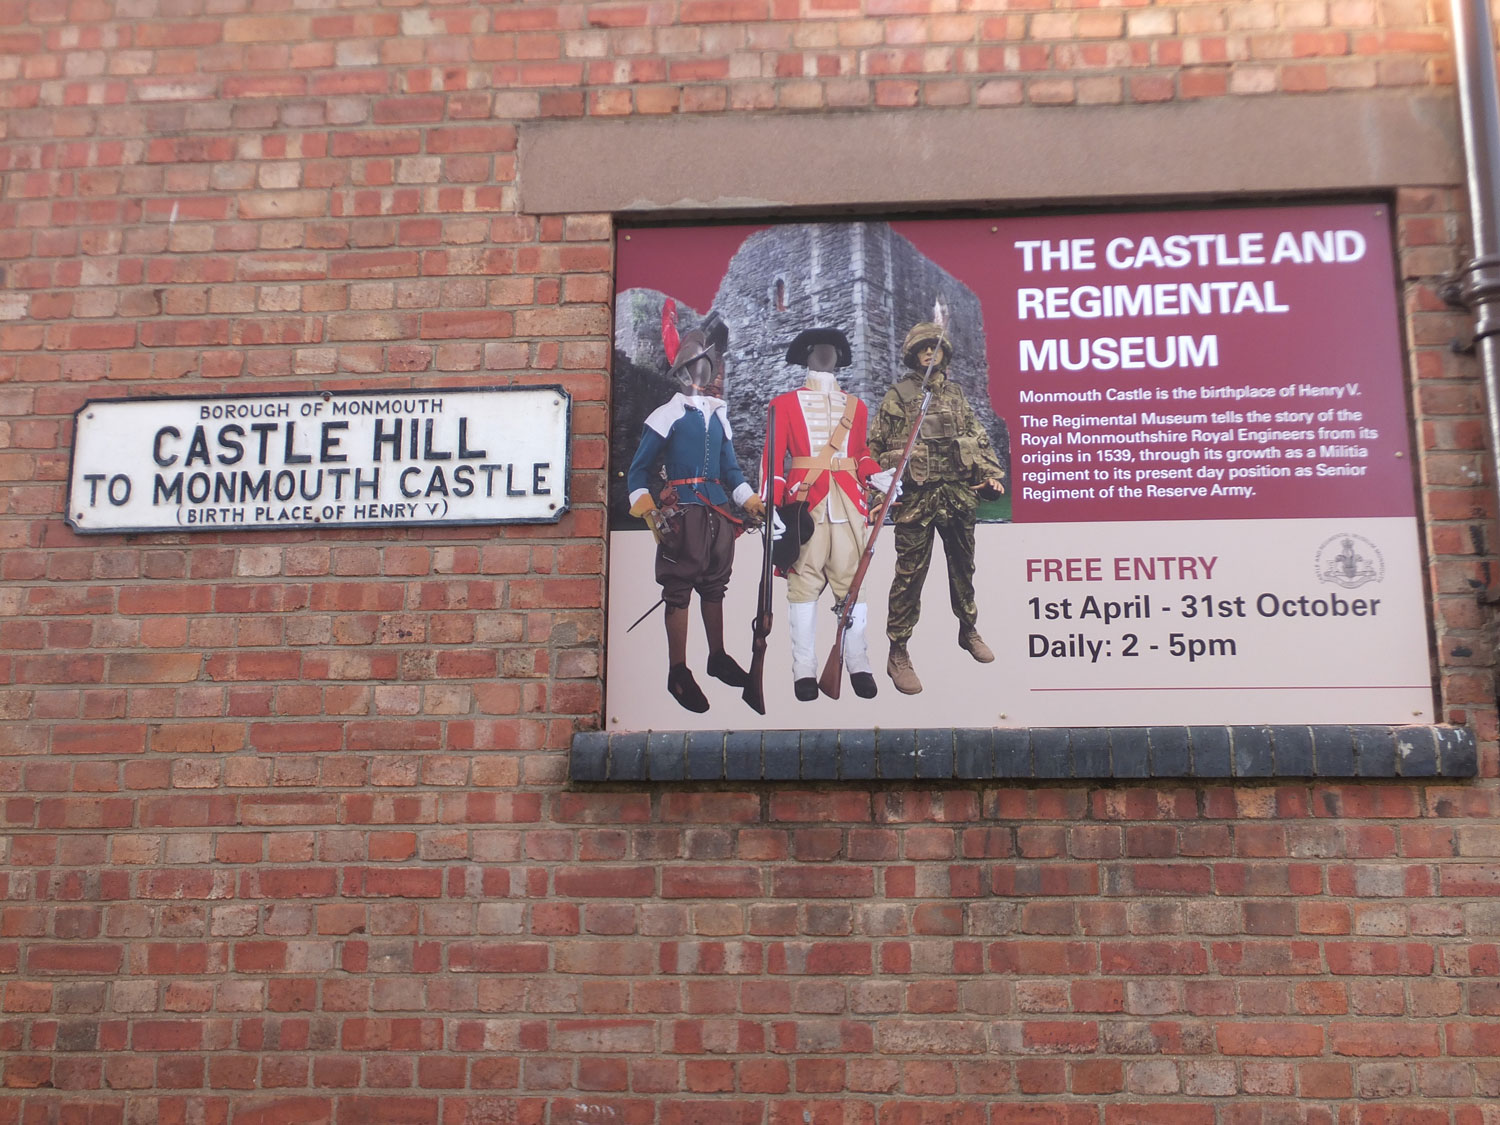 New signage for the RMONRE Regimental Museum to complement the Heritage Interpretation.